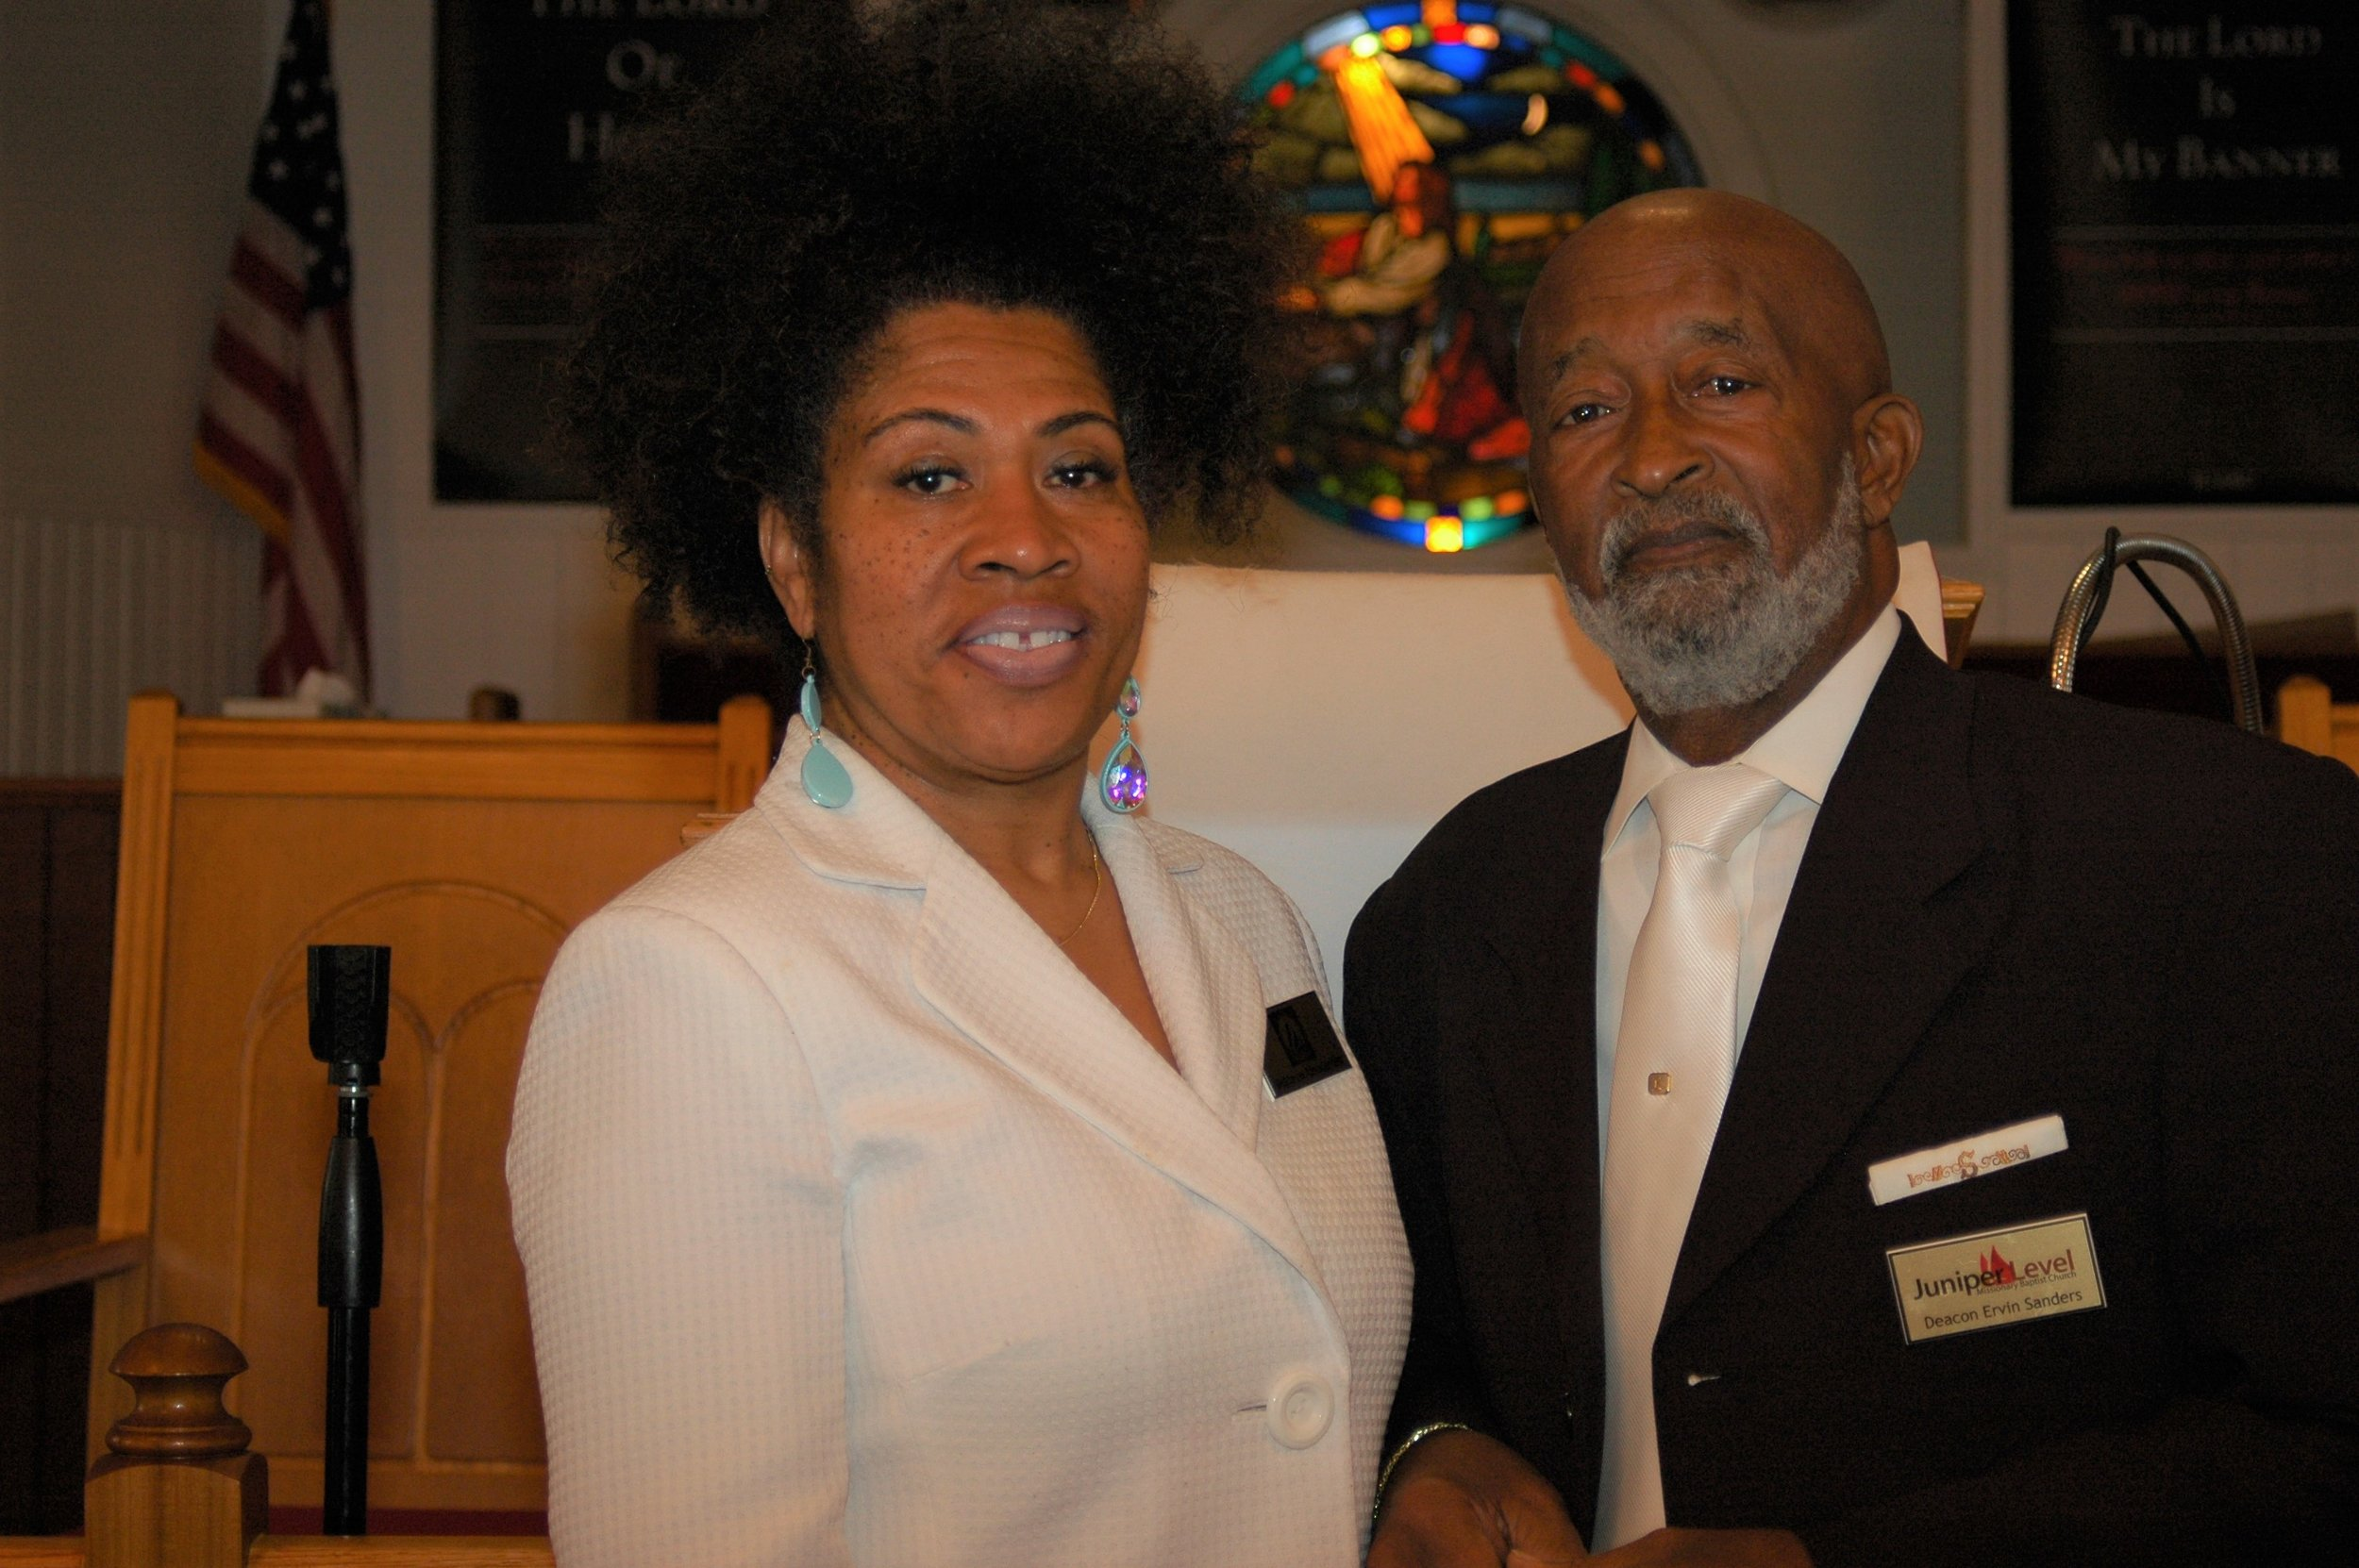 Deacon and Deaconess Ervin and Robin Sanders